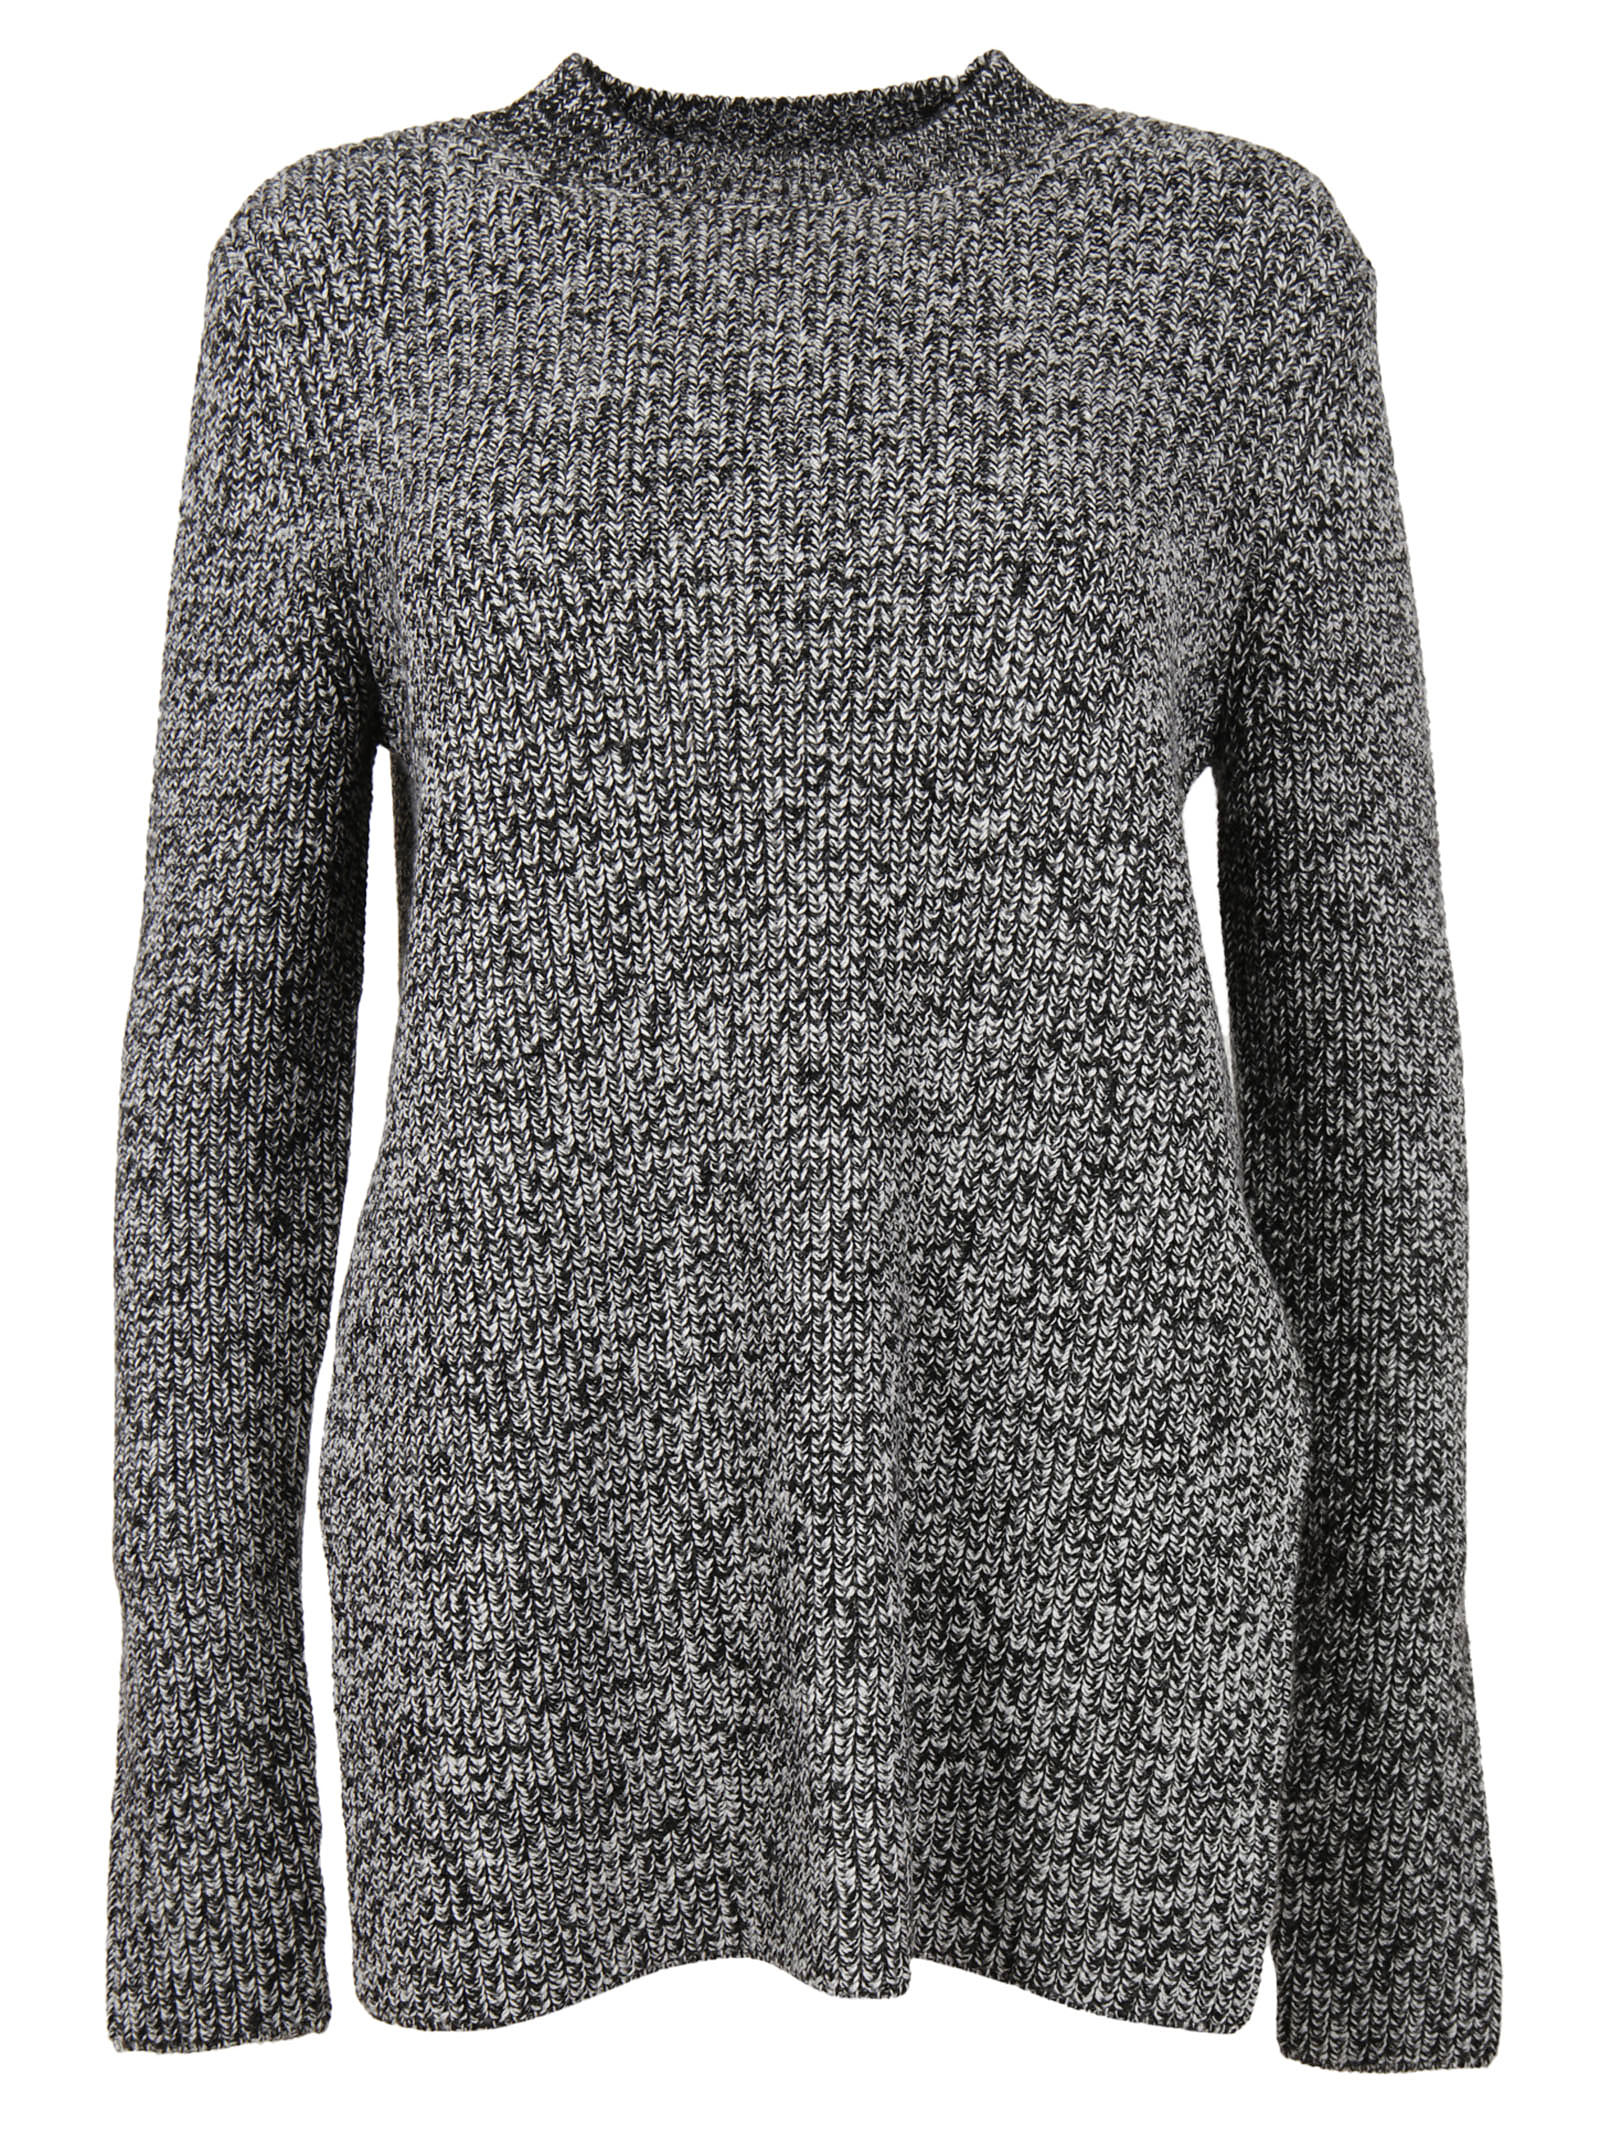 Carven Carven Wool Sweater